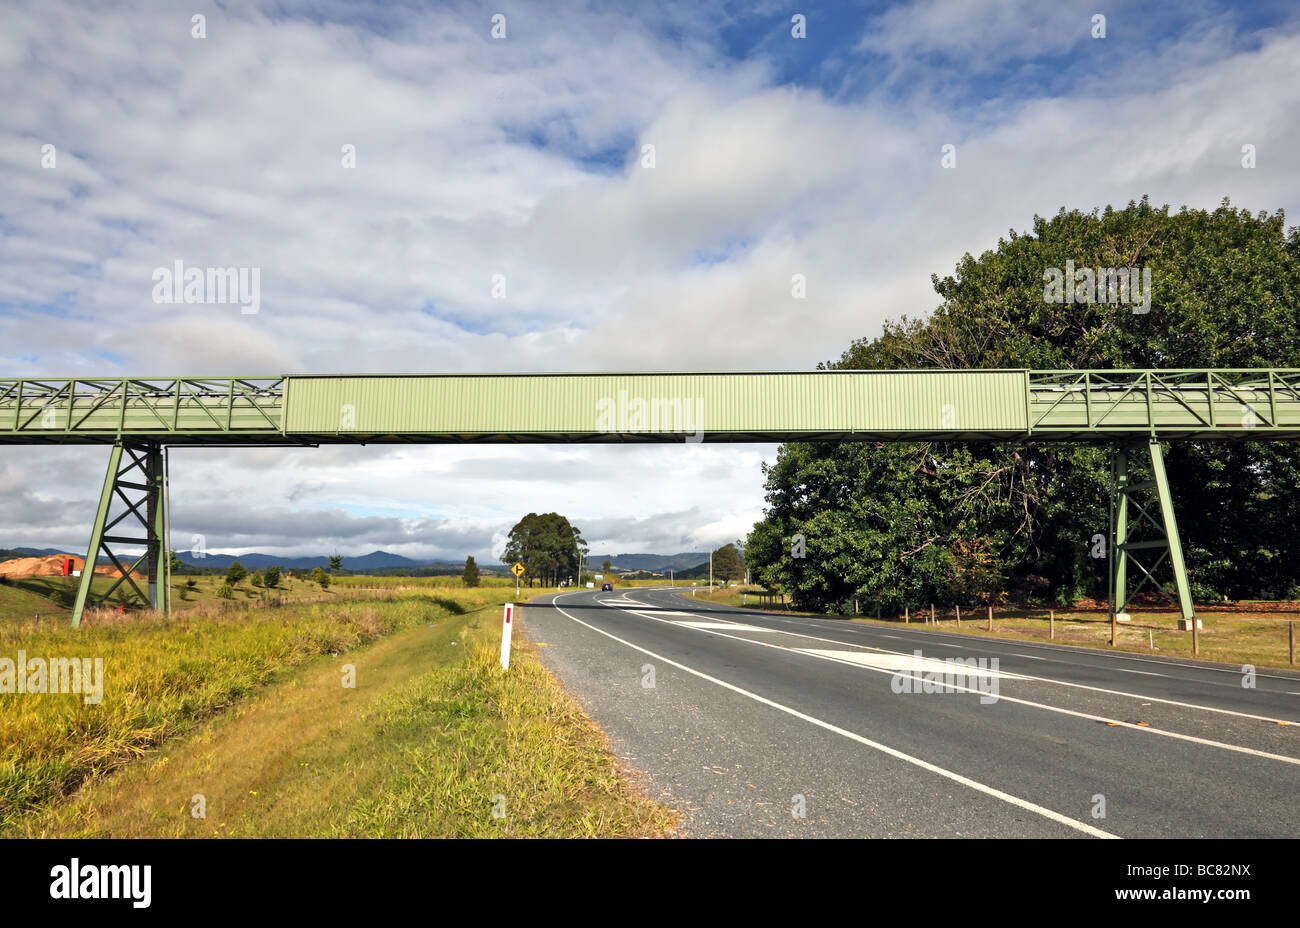 Conveyor belt accross a highway for the purpose of moving cut sugarcane to a factory for refining - Stock Image